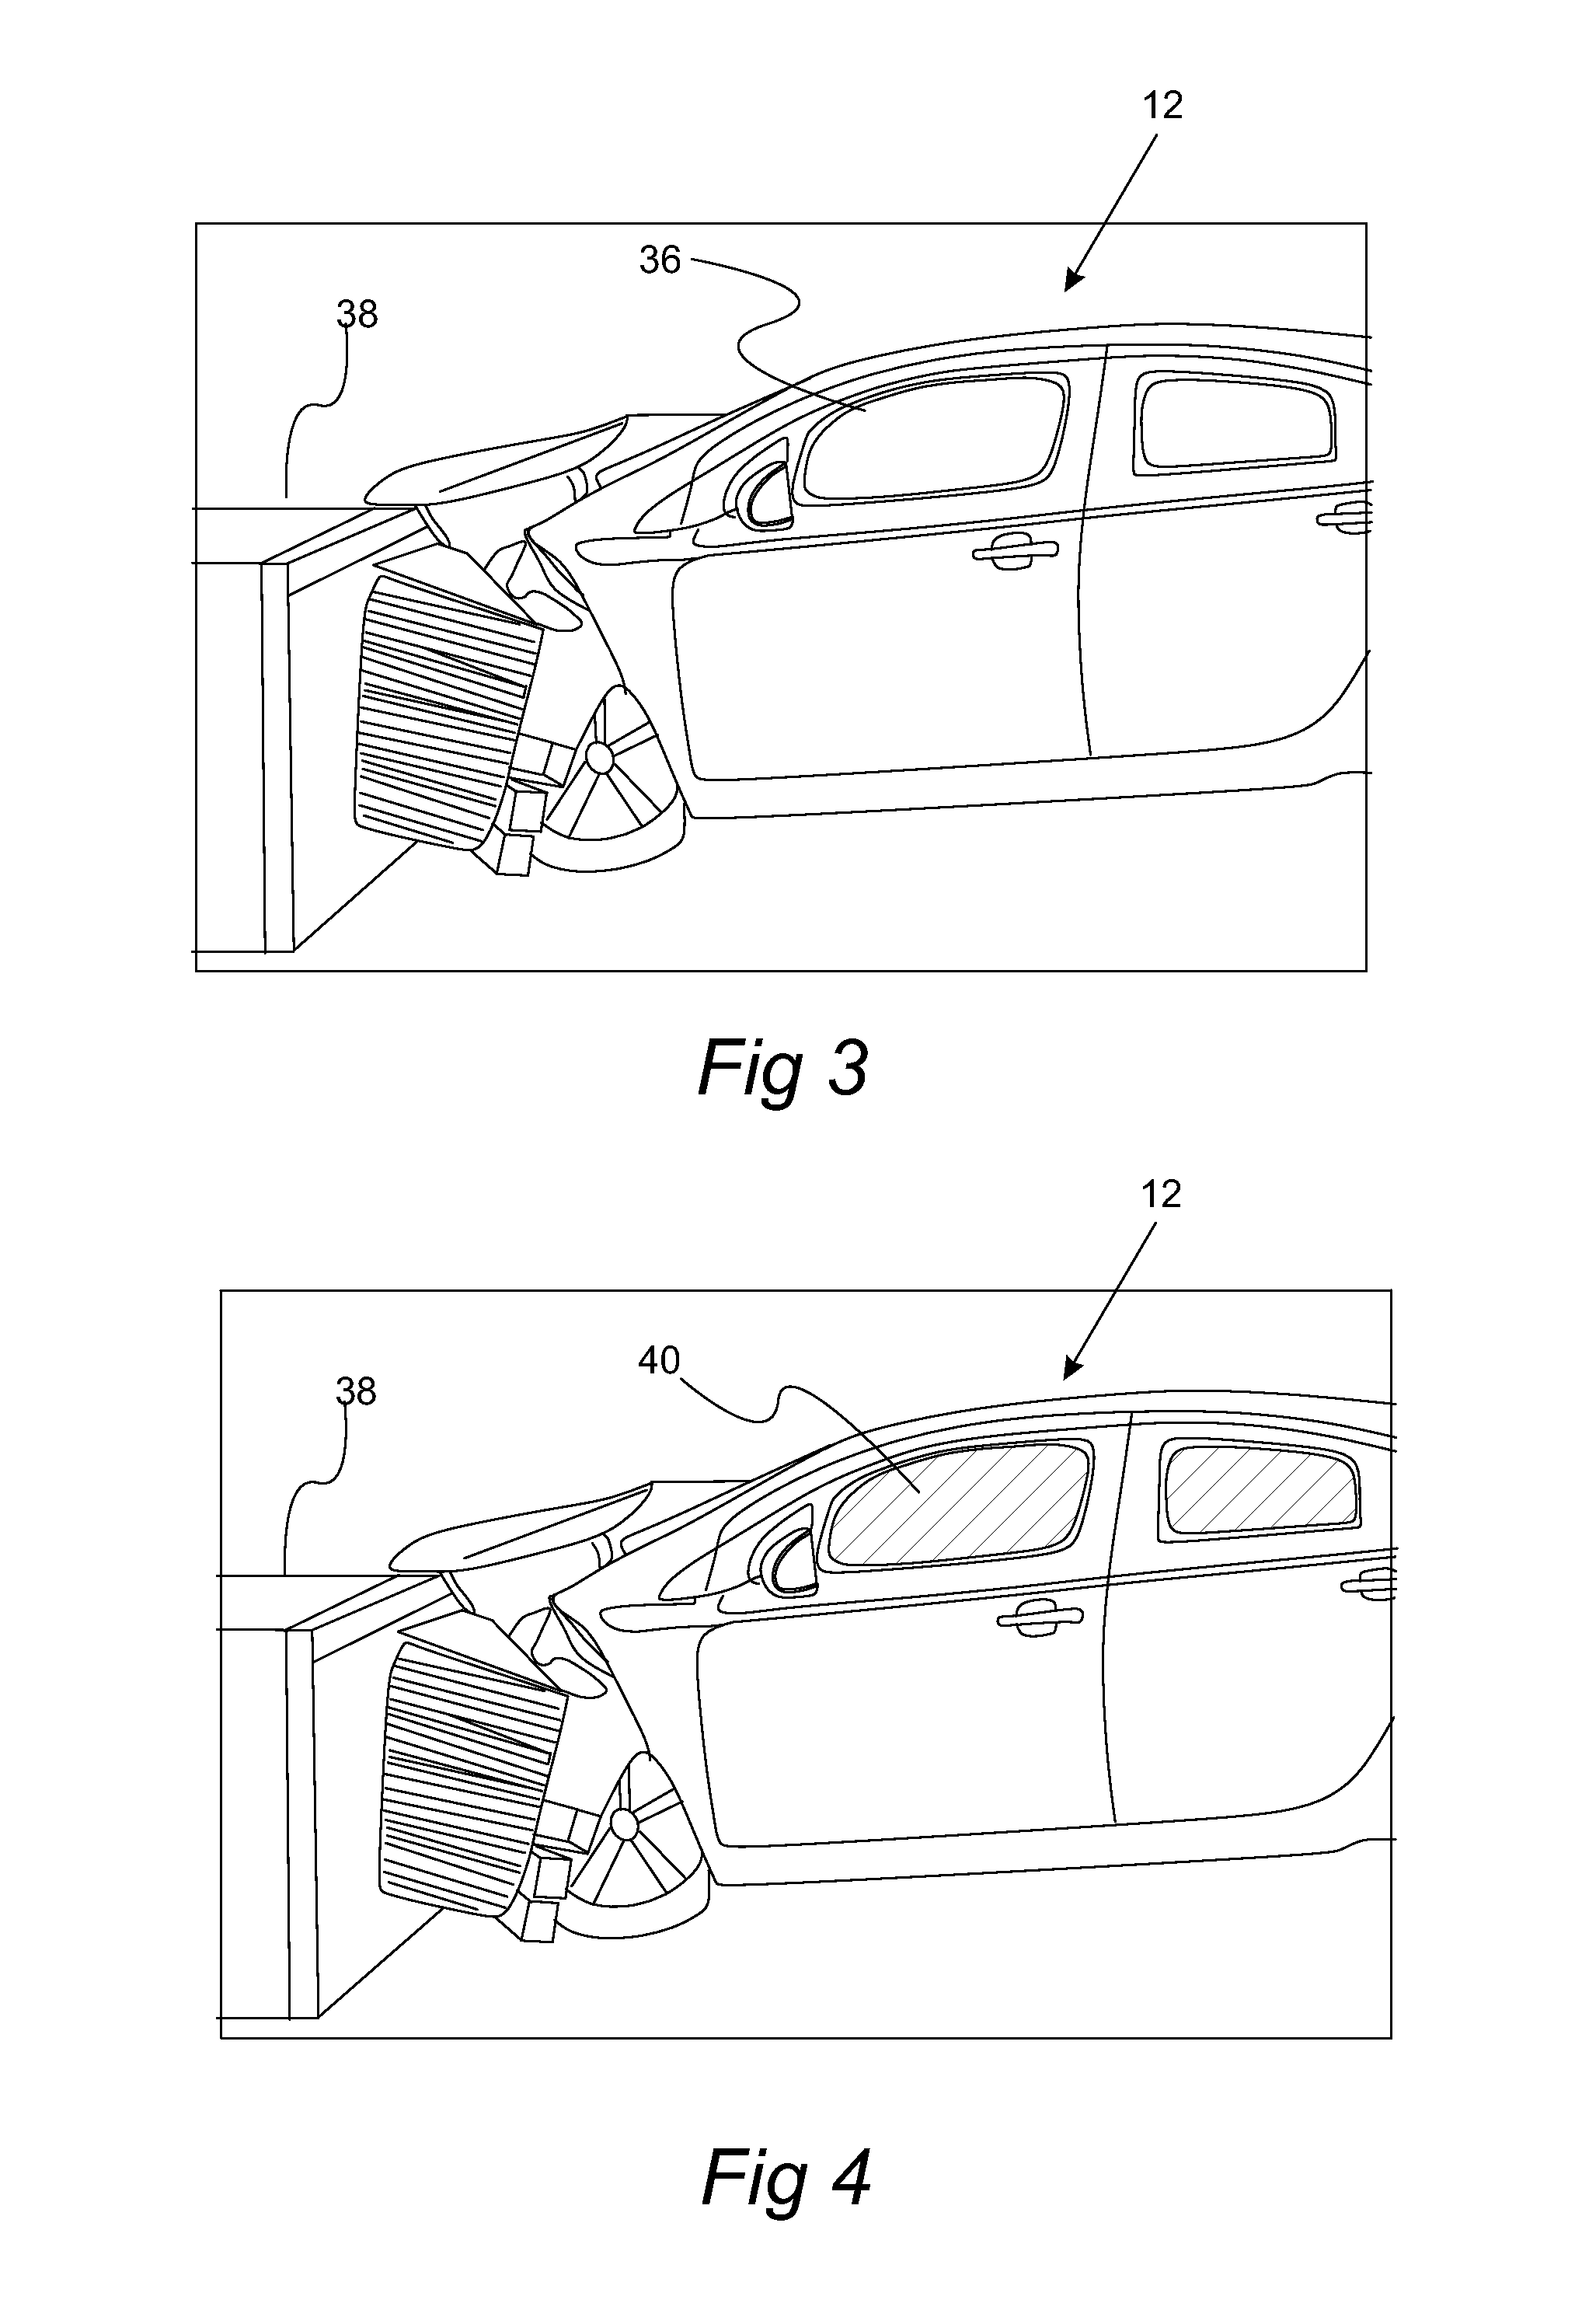 Patent Us20140300091 High Voltage Color Indicated Air Bags Airbag Schematic Fabric Diagram Drawing